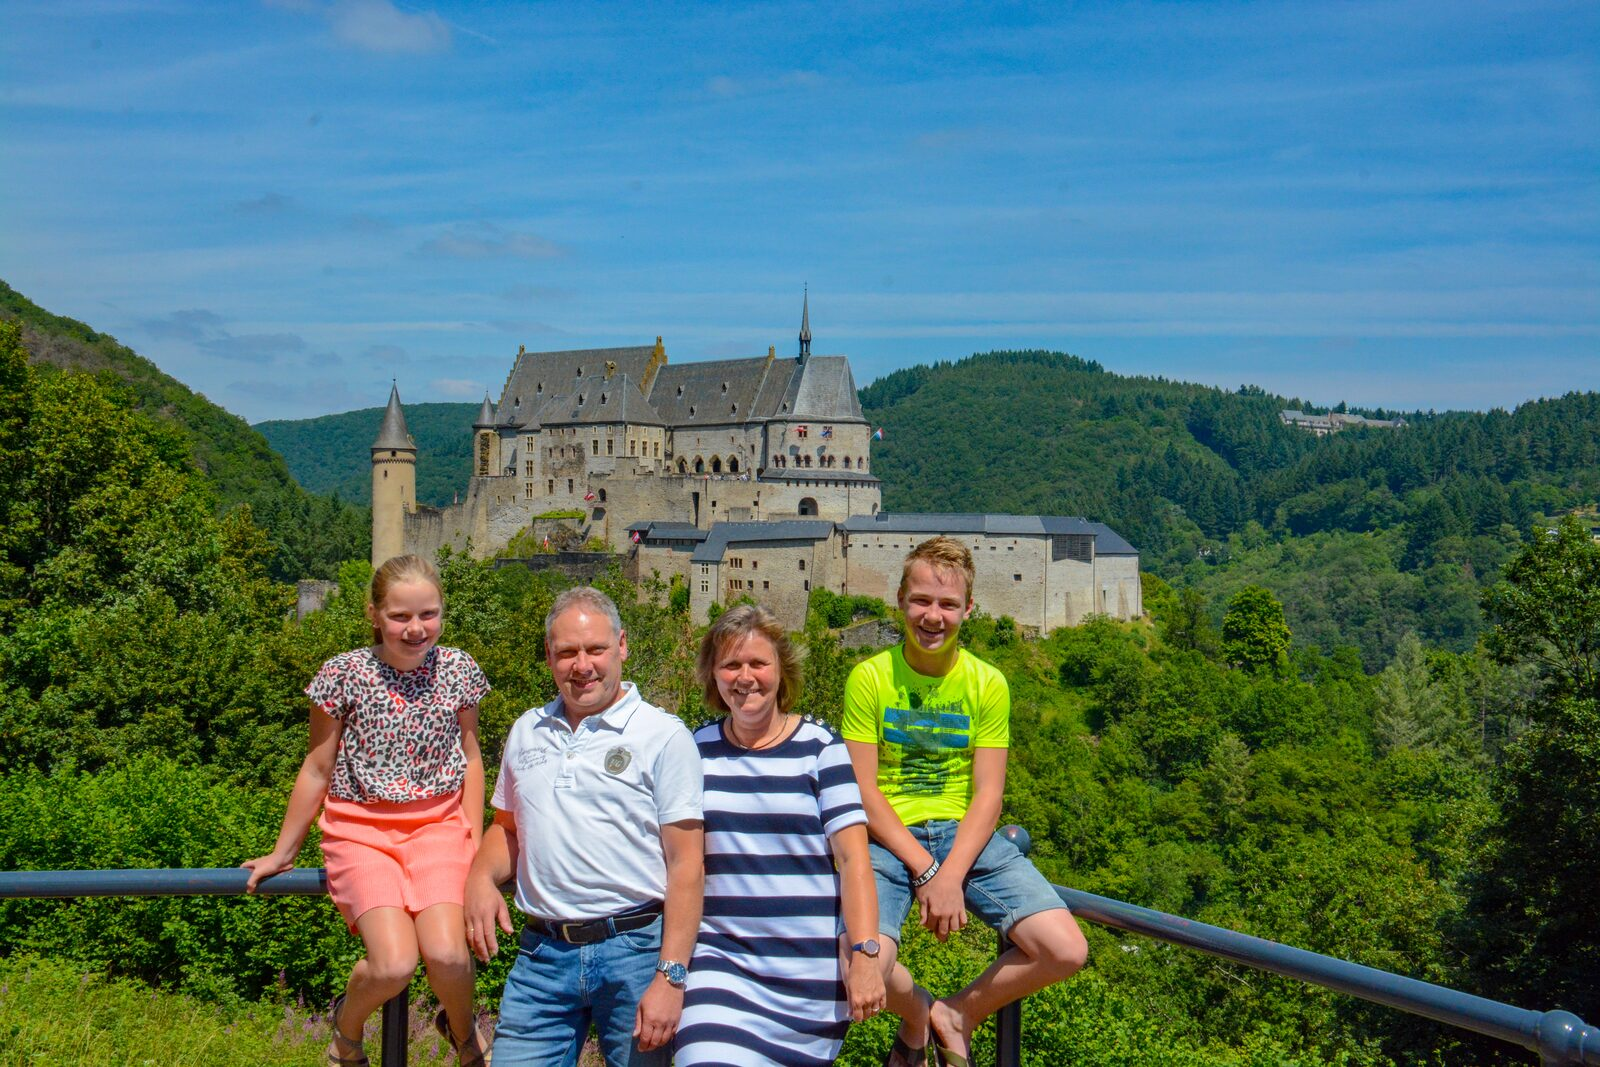 Family photo in front of castle Vianden